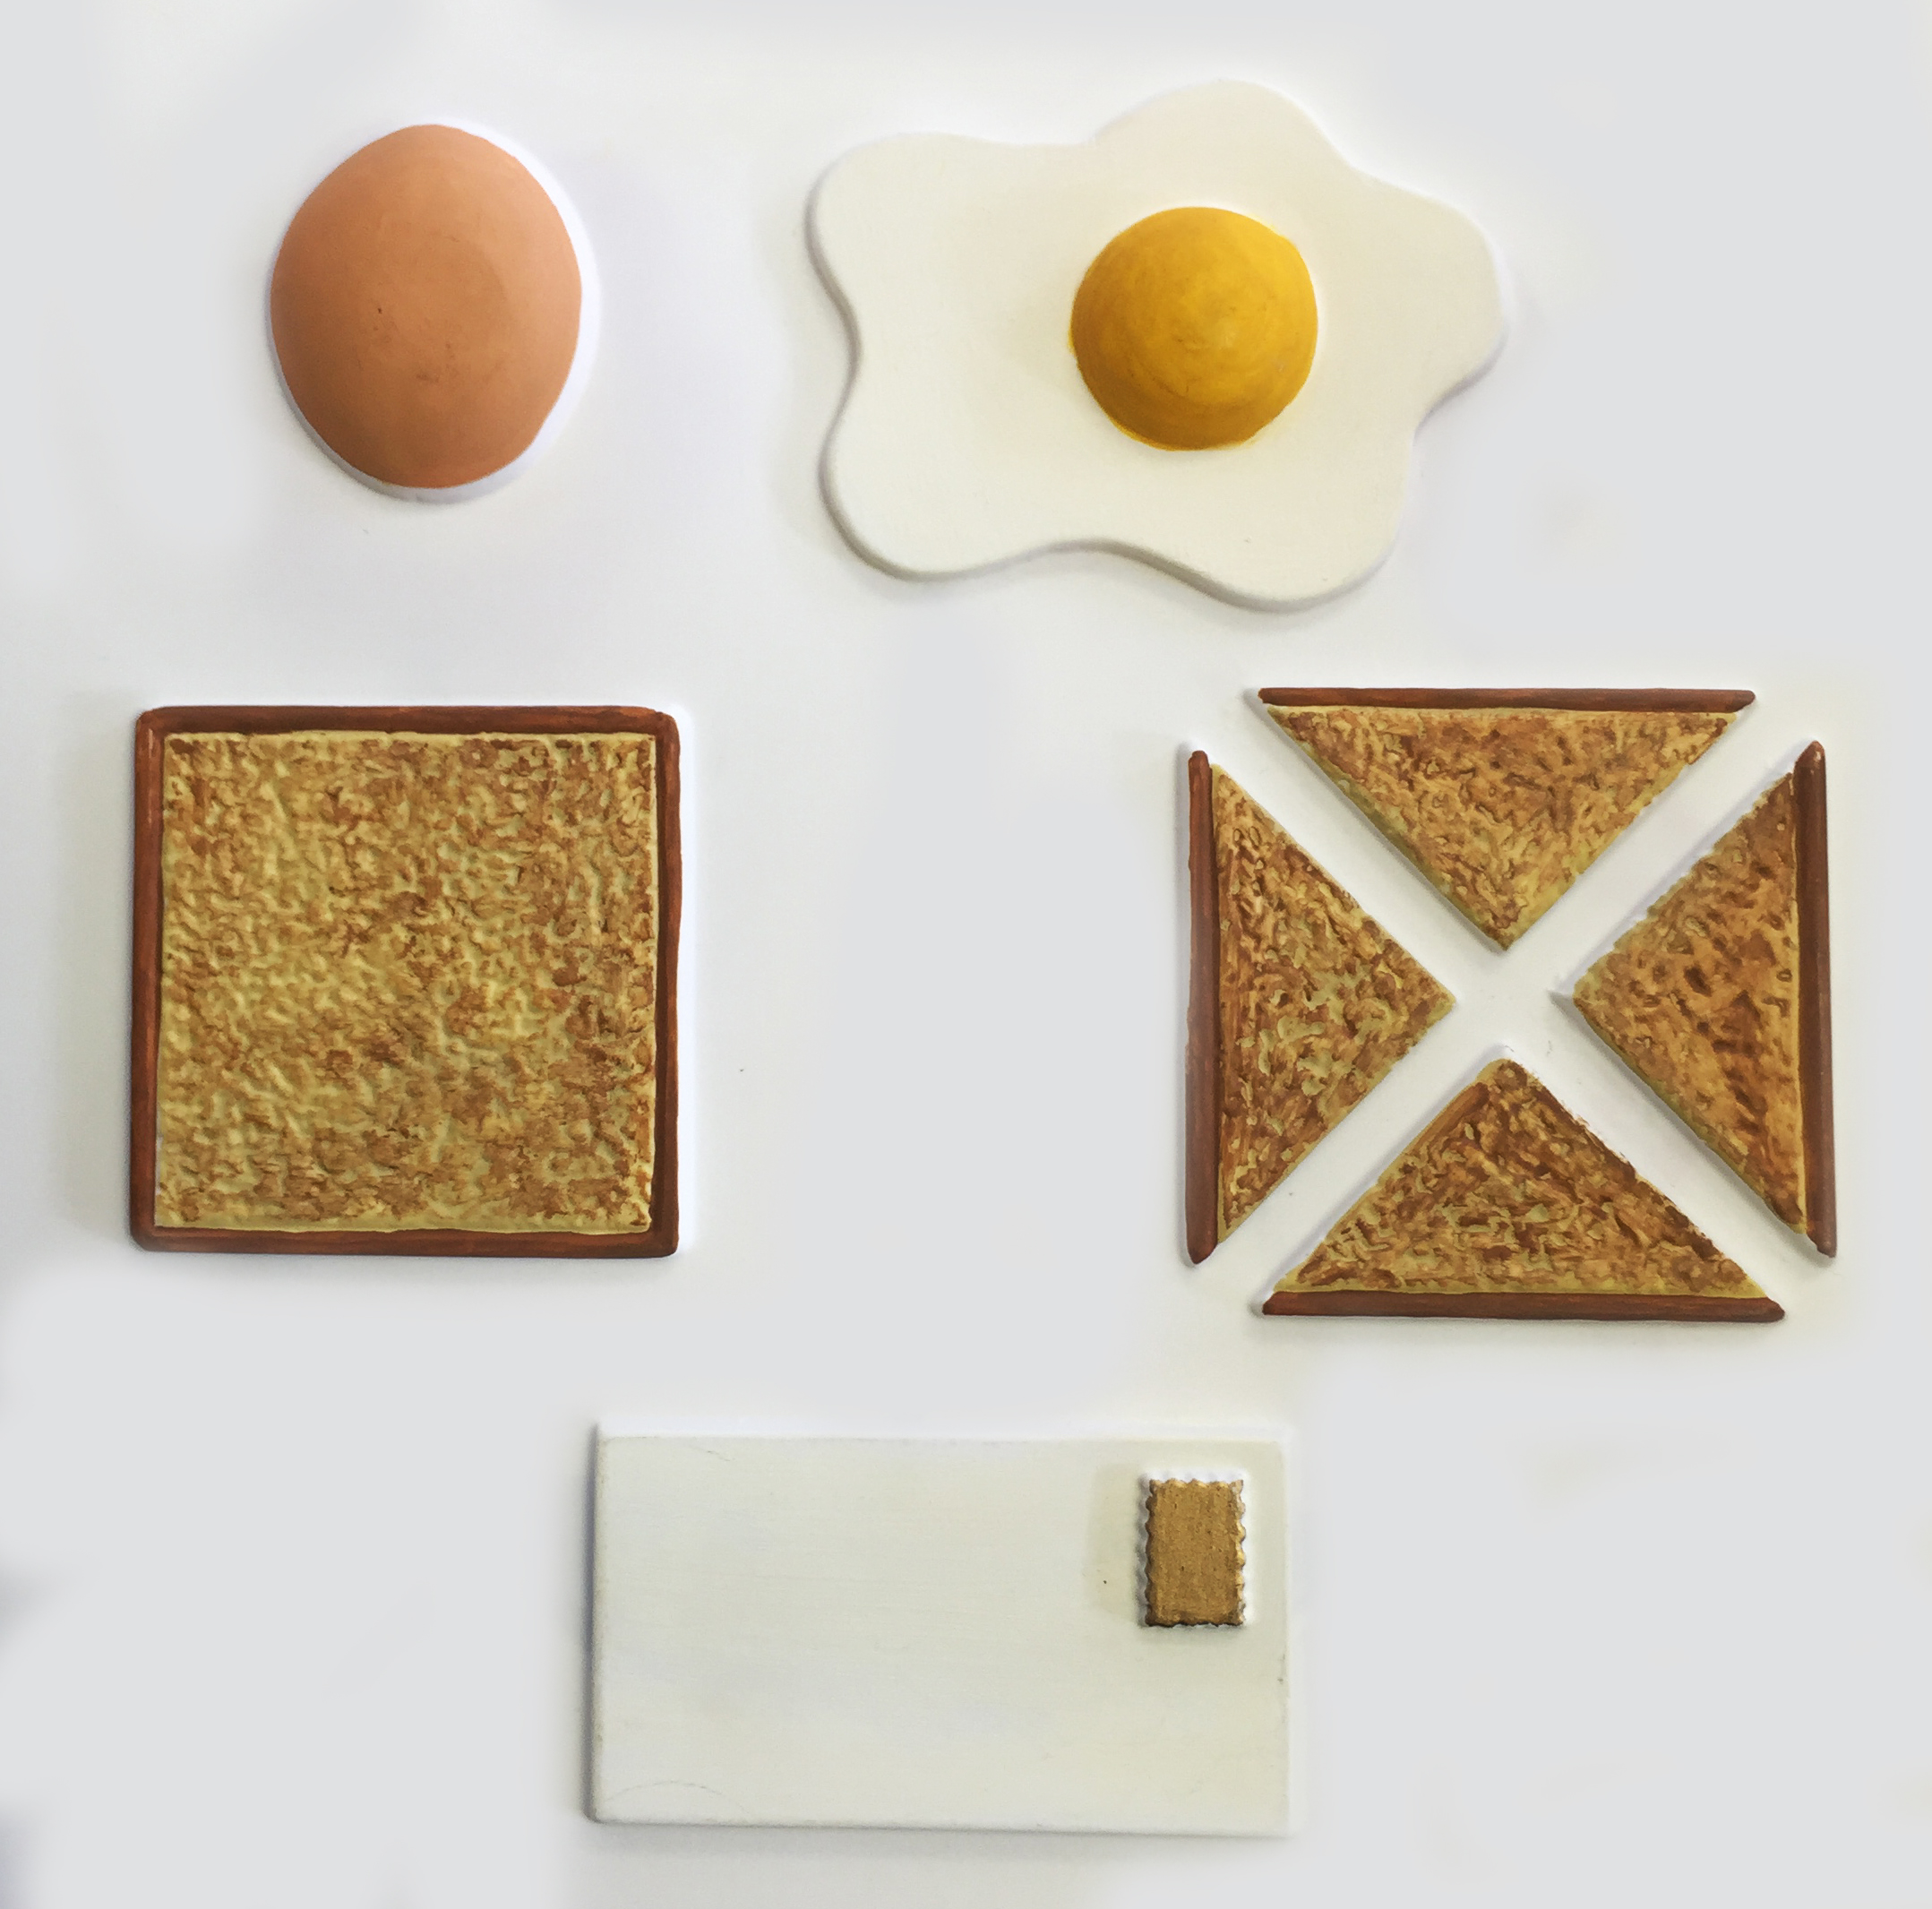 Spots breakfast tactile picture, egg and toast with an envelope with stamp.